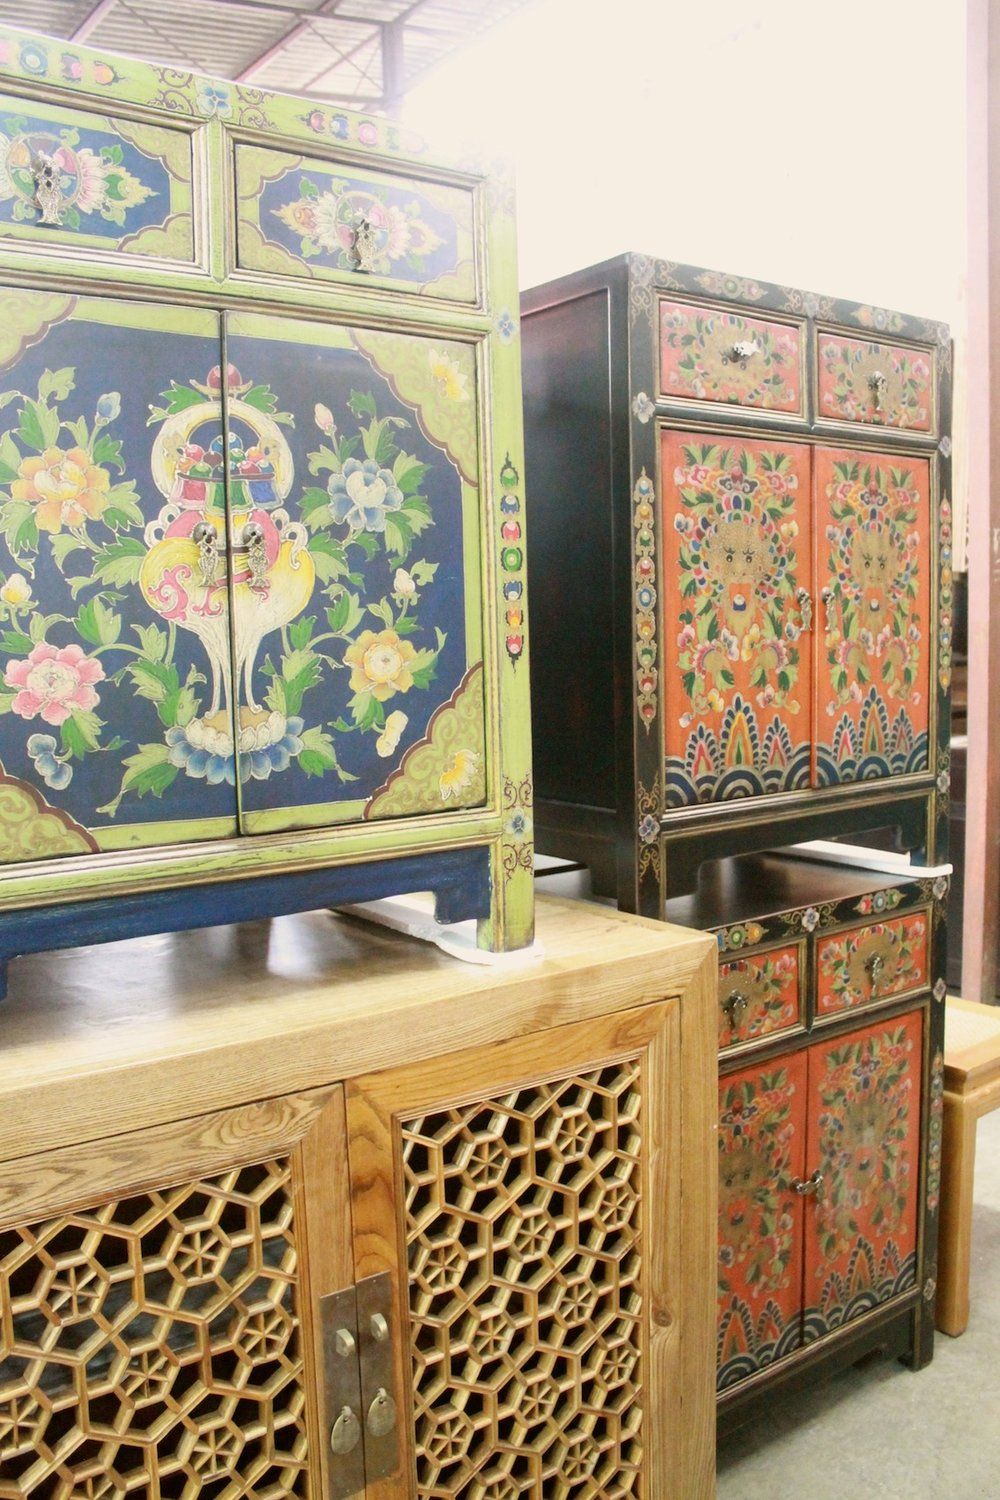 Hand-painted Tibetan-style side cabinets